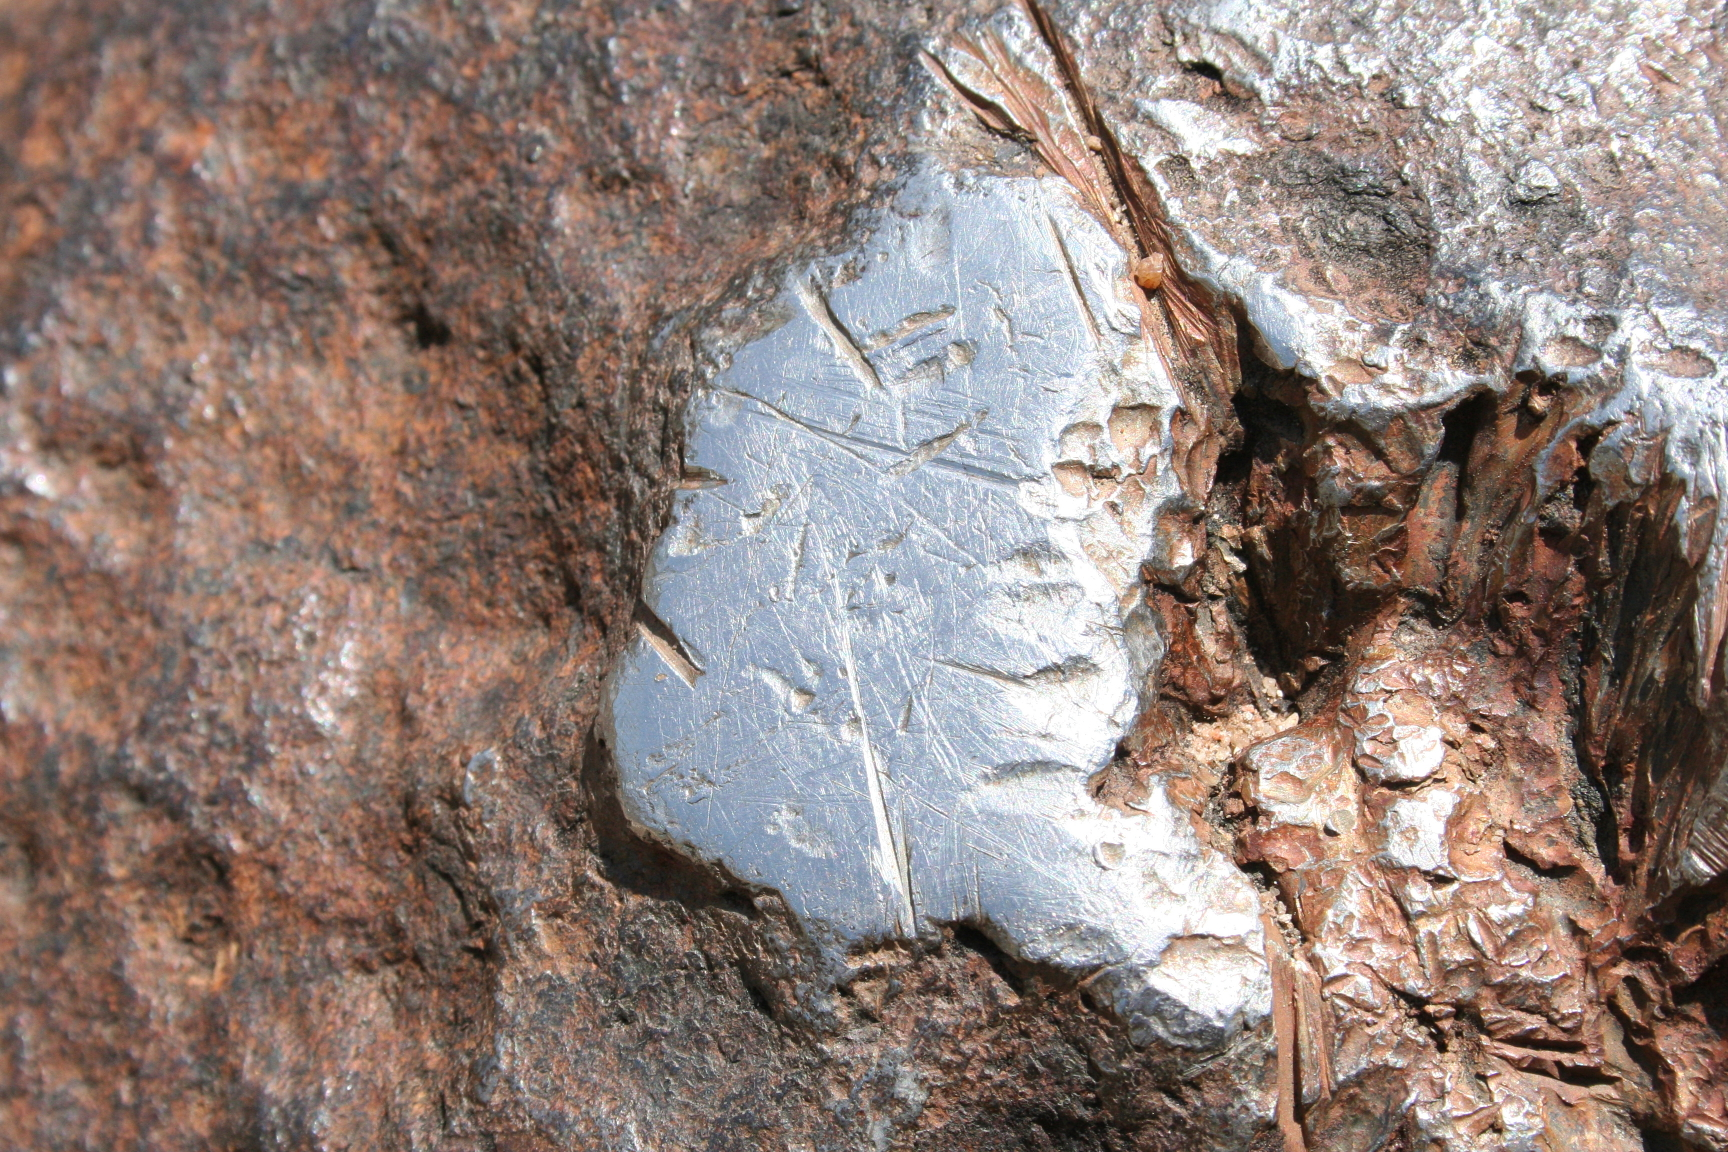 Ultra-close-up of Hoba Meteorite, showing vandalism of the surface before it was declared protected by Namibian Government